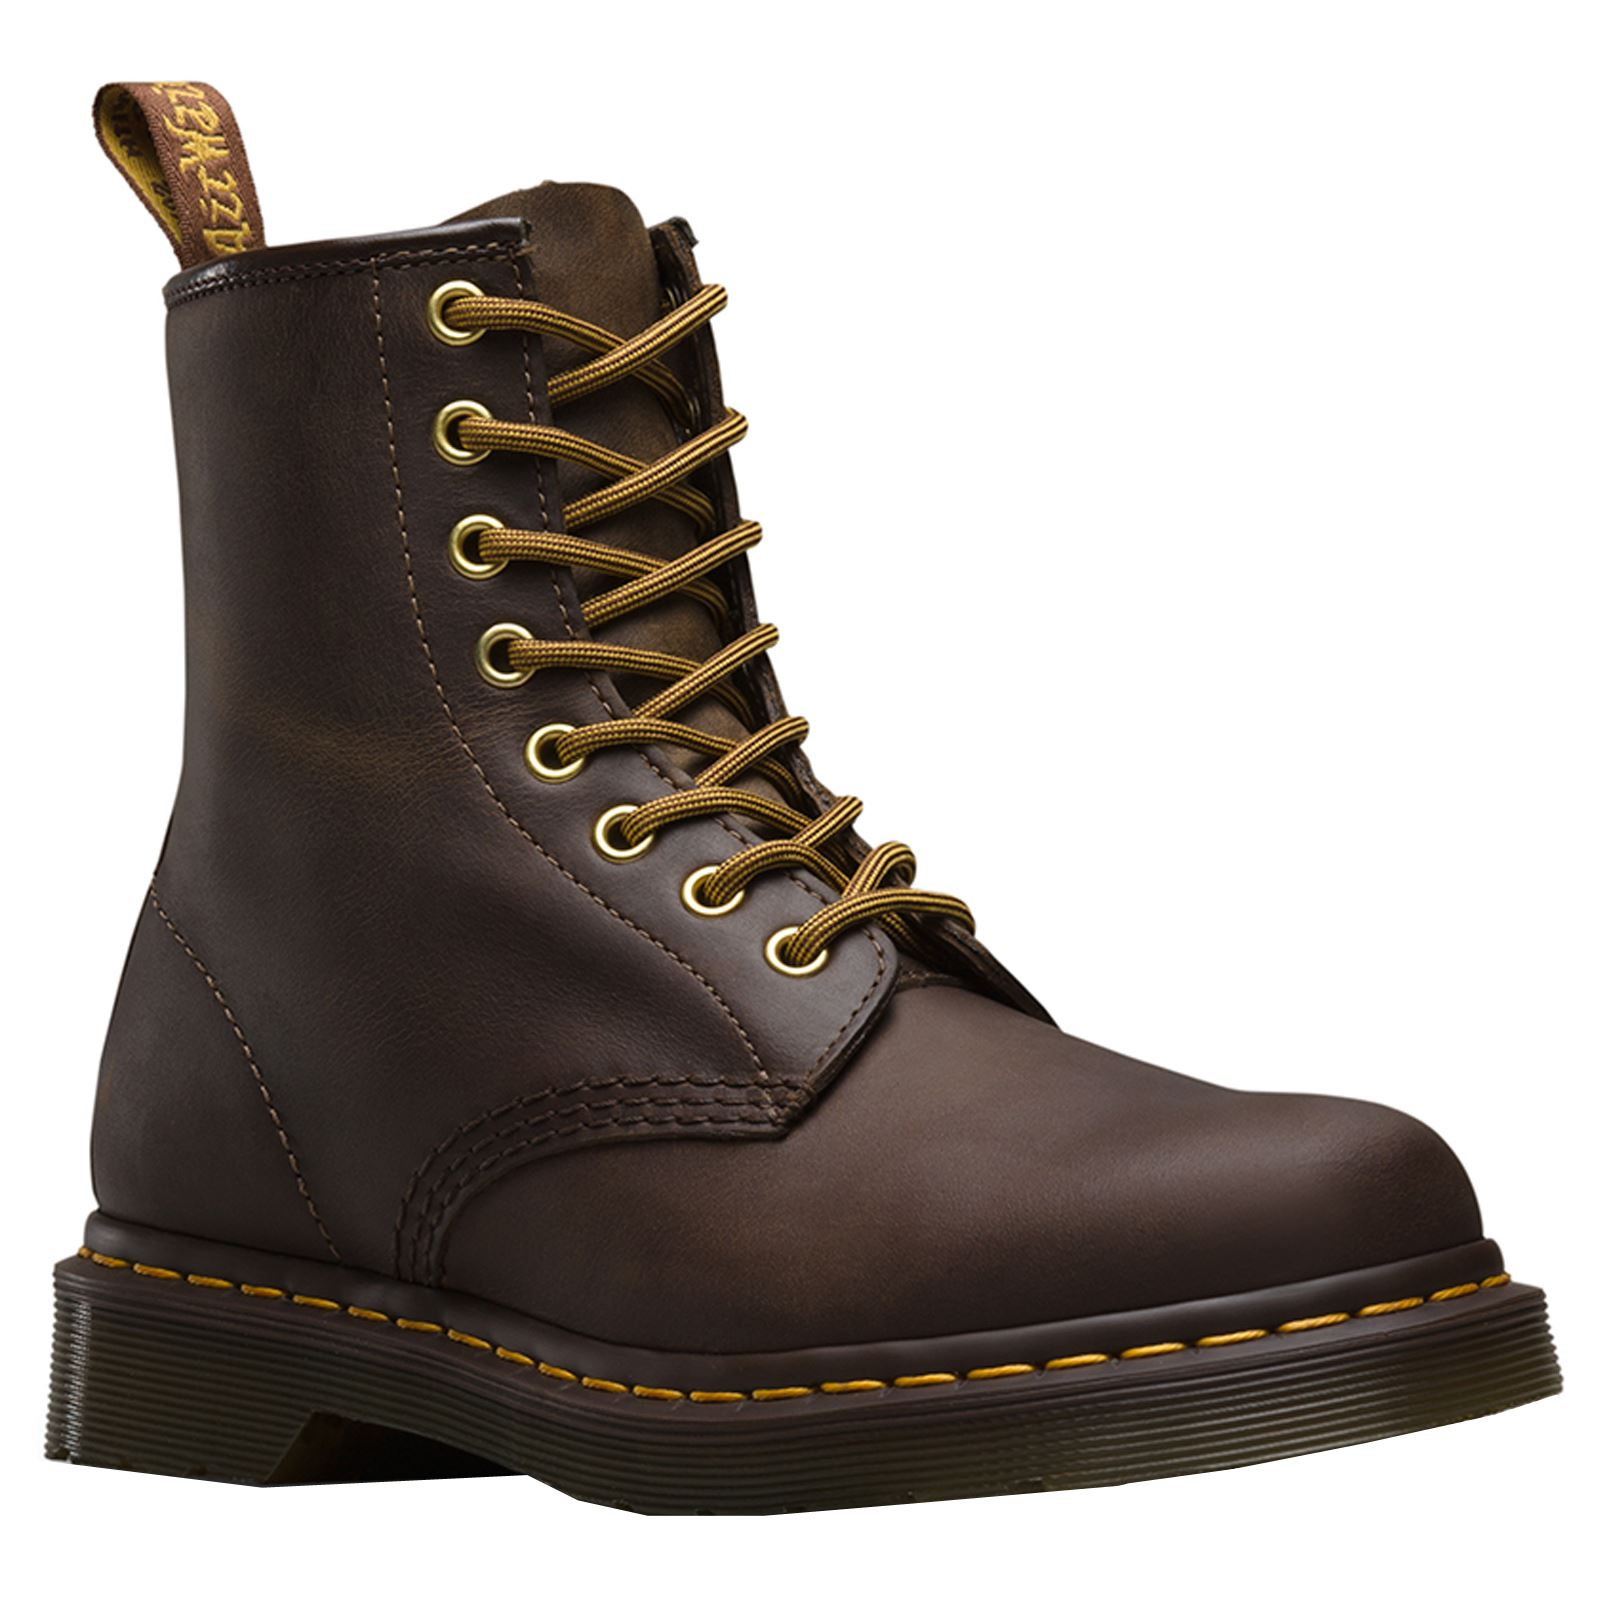 Details about Dr.Martens 1460 8 Eyelet Aztec Womens Crazy Horse Mid-calf  AirWair Ankle Boots a88191ed7